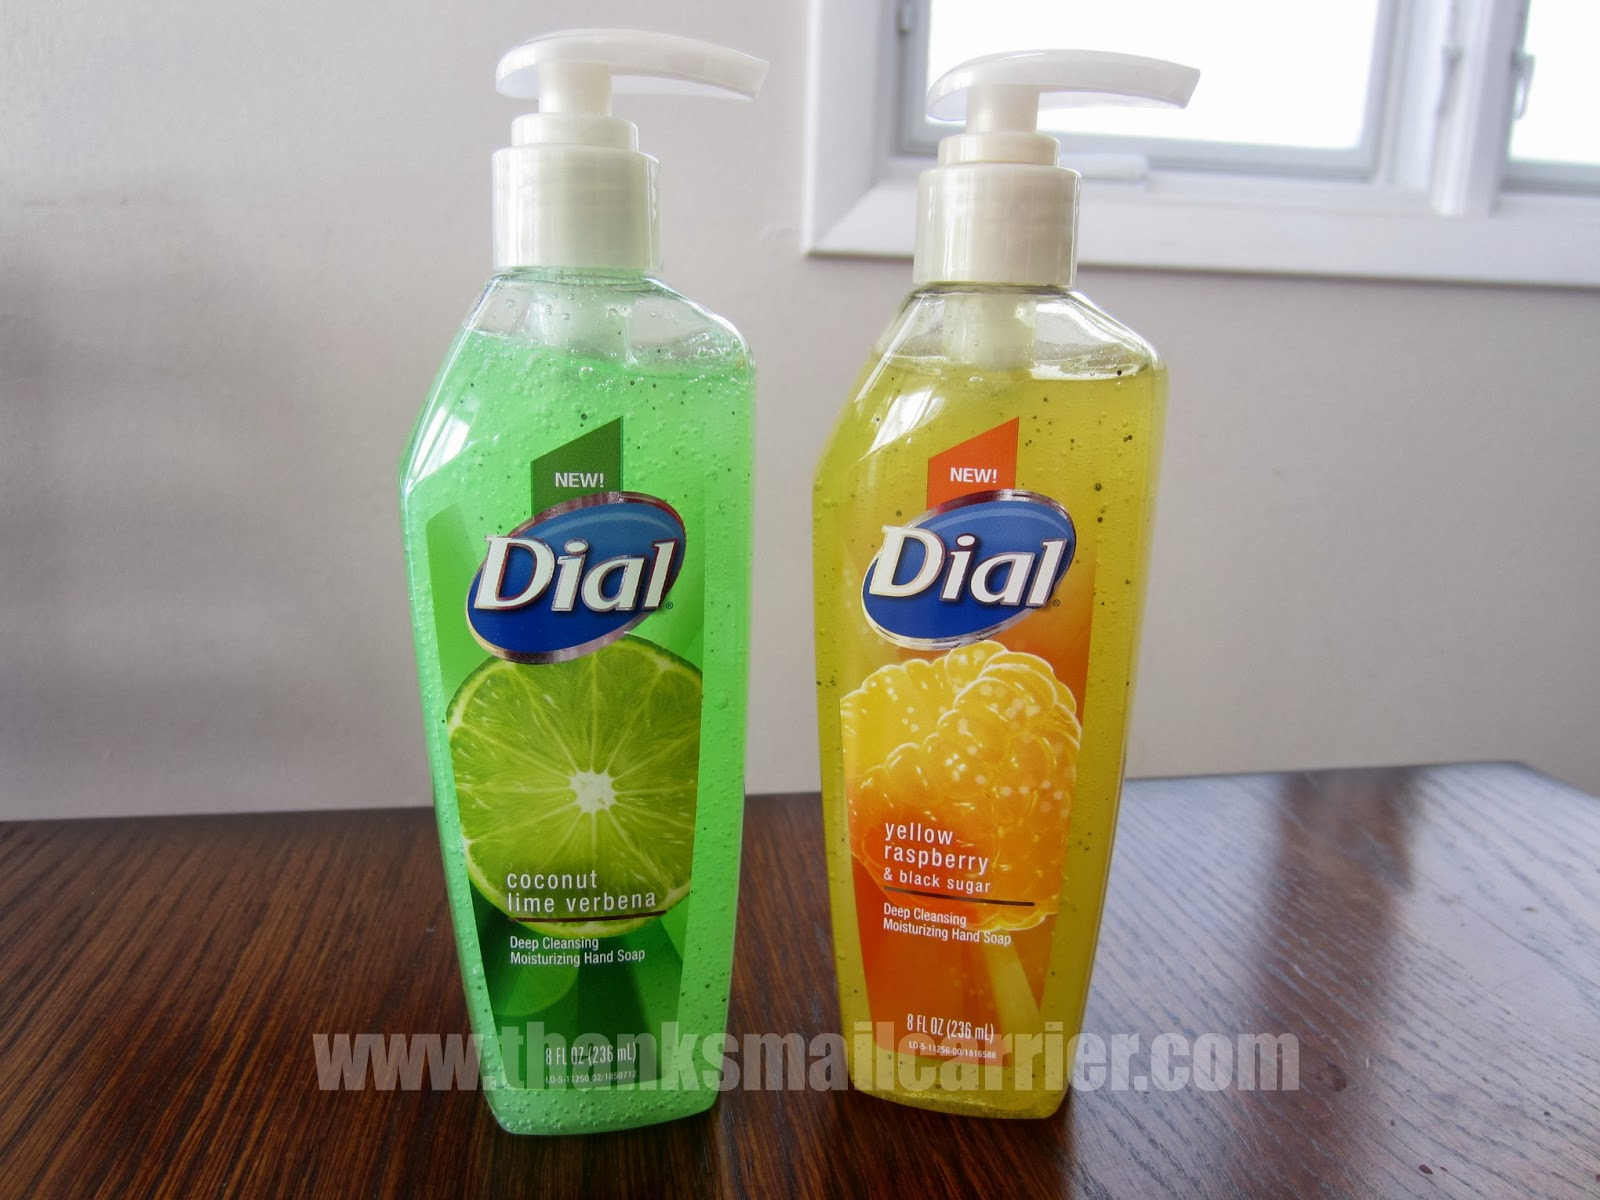 Dial hand soaps